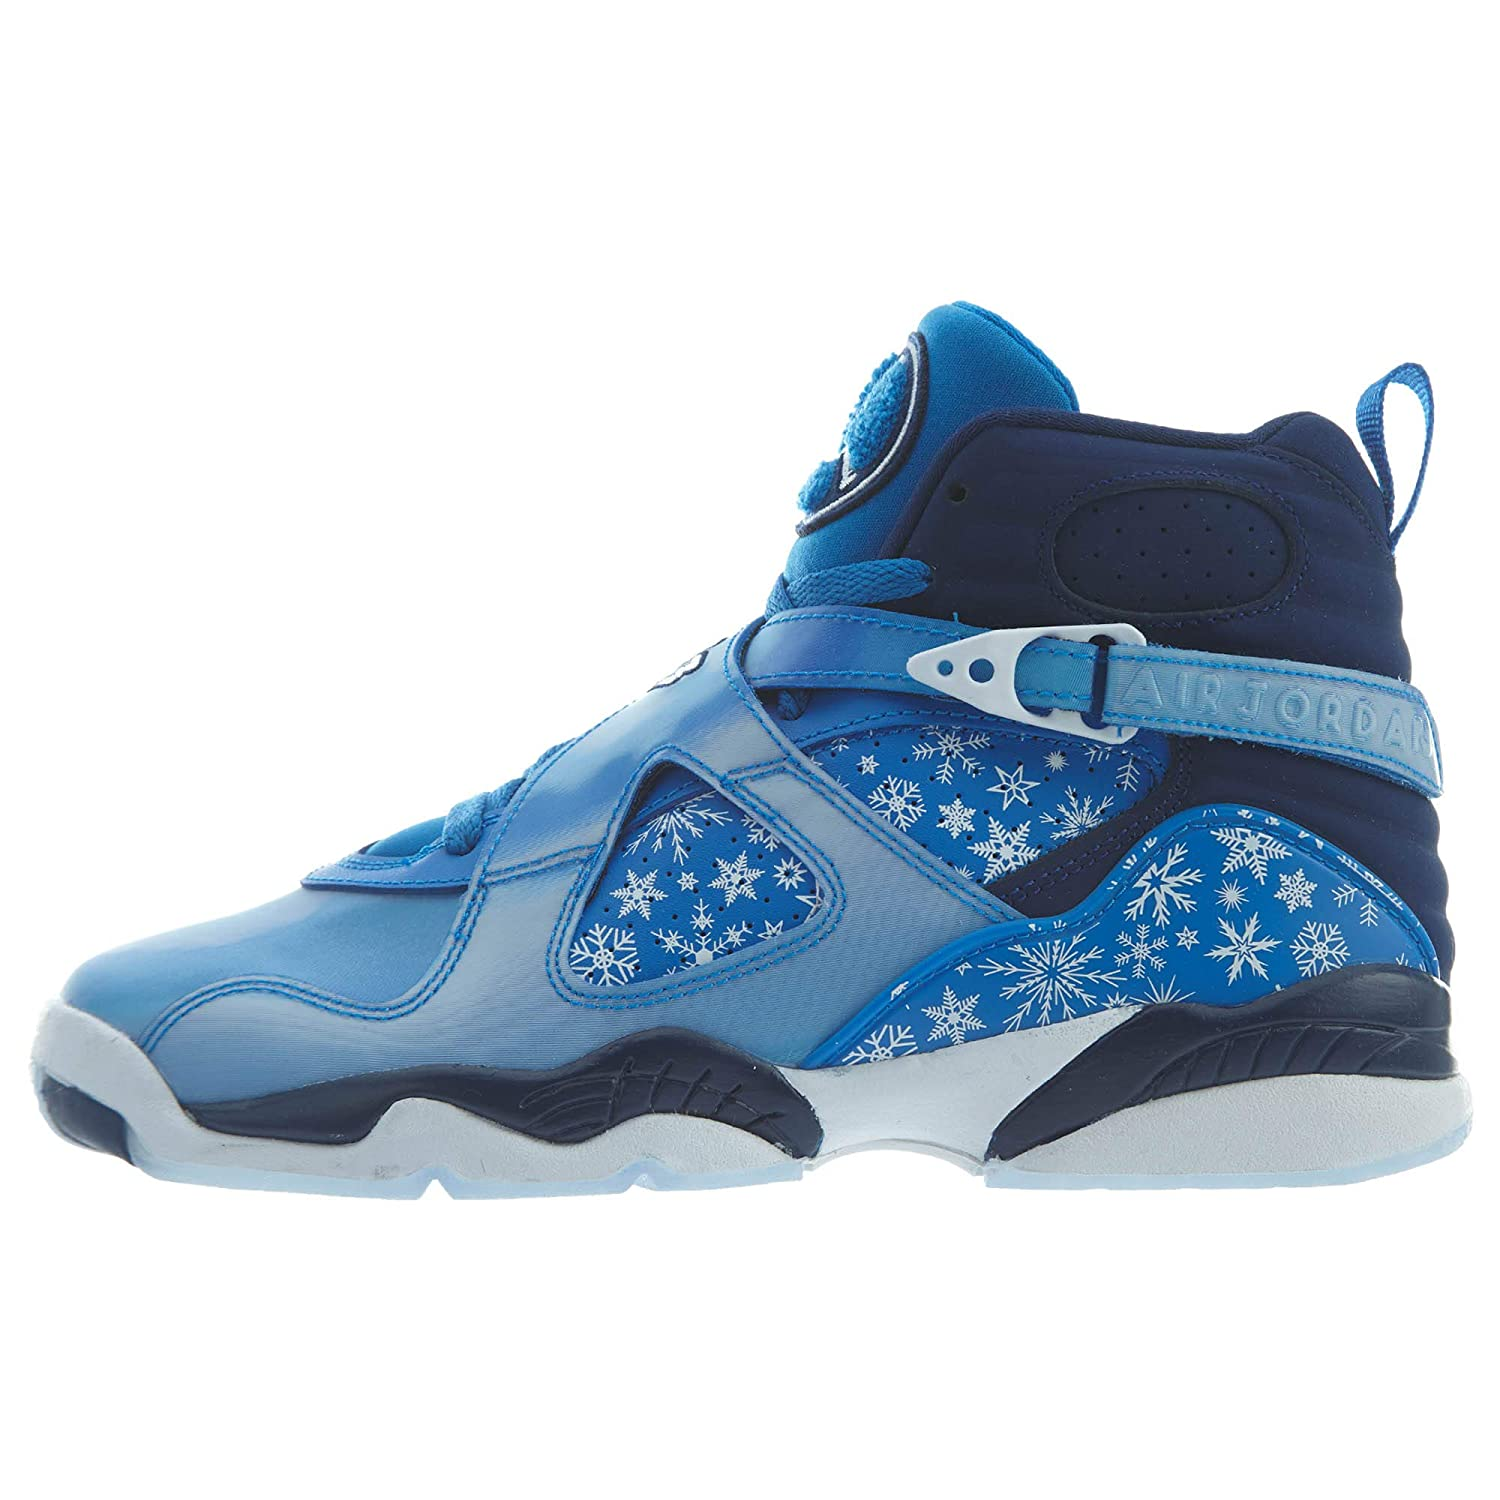 separation shoes d1262 90784 Nike Air Jordan 8 Retro Big Kid's Shoe Cobalt Blaze/Blue/Void/White  305368-400 (4.5 M US)